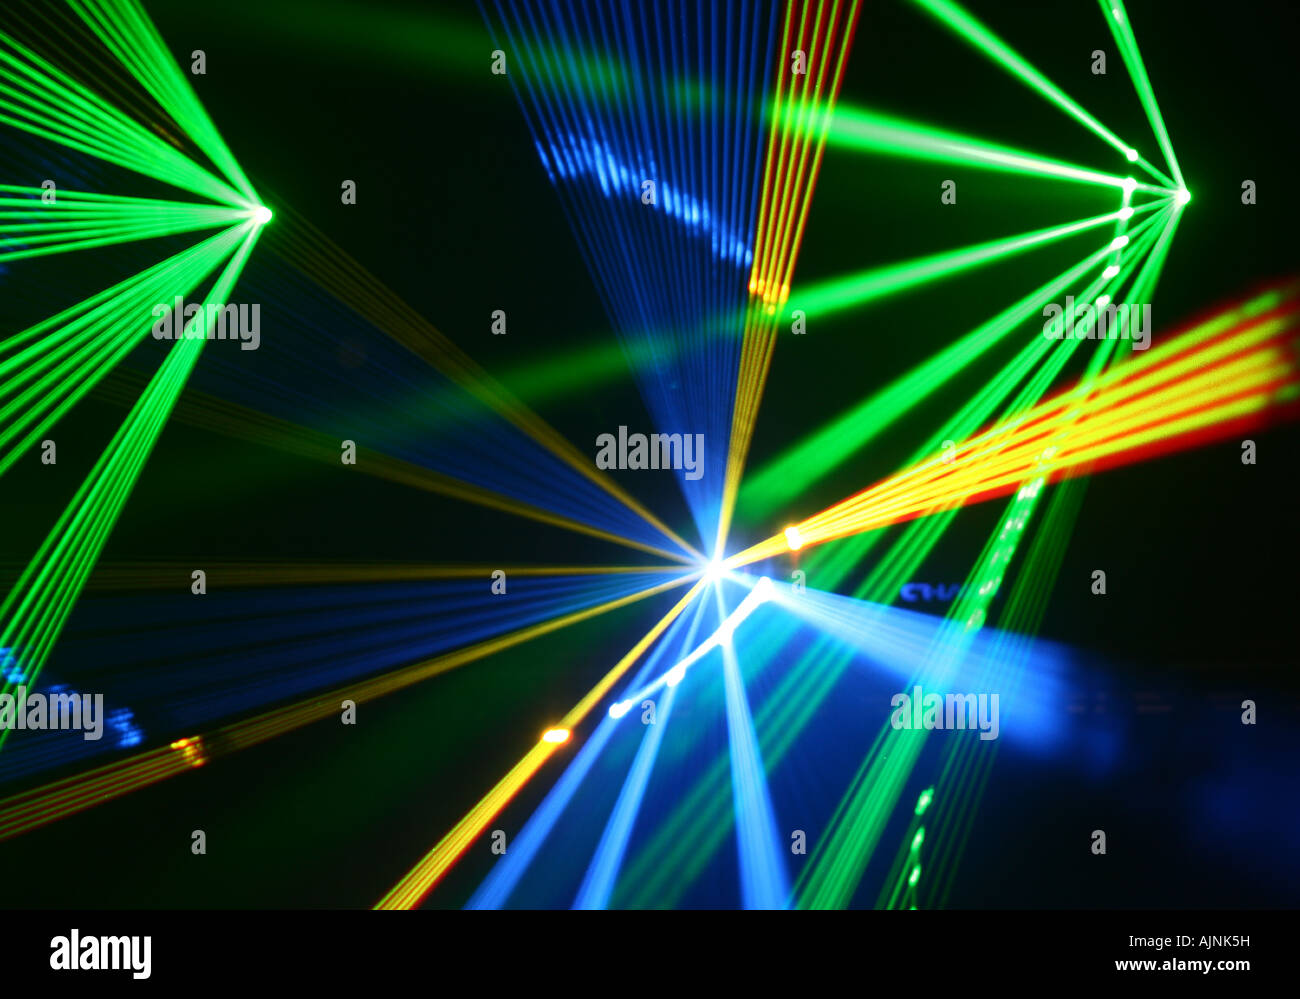 Green blue and yellow laser light show - Stock Image